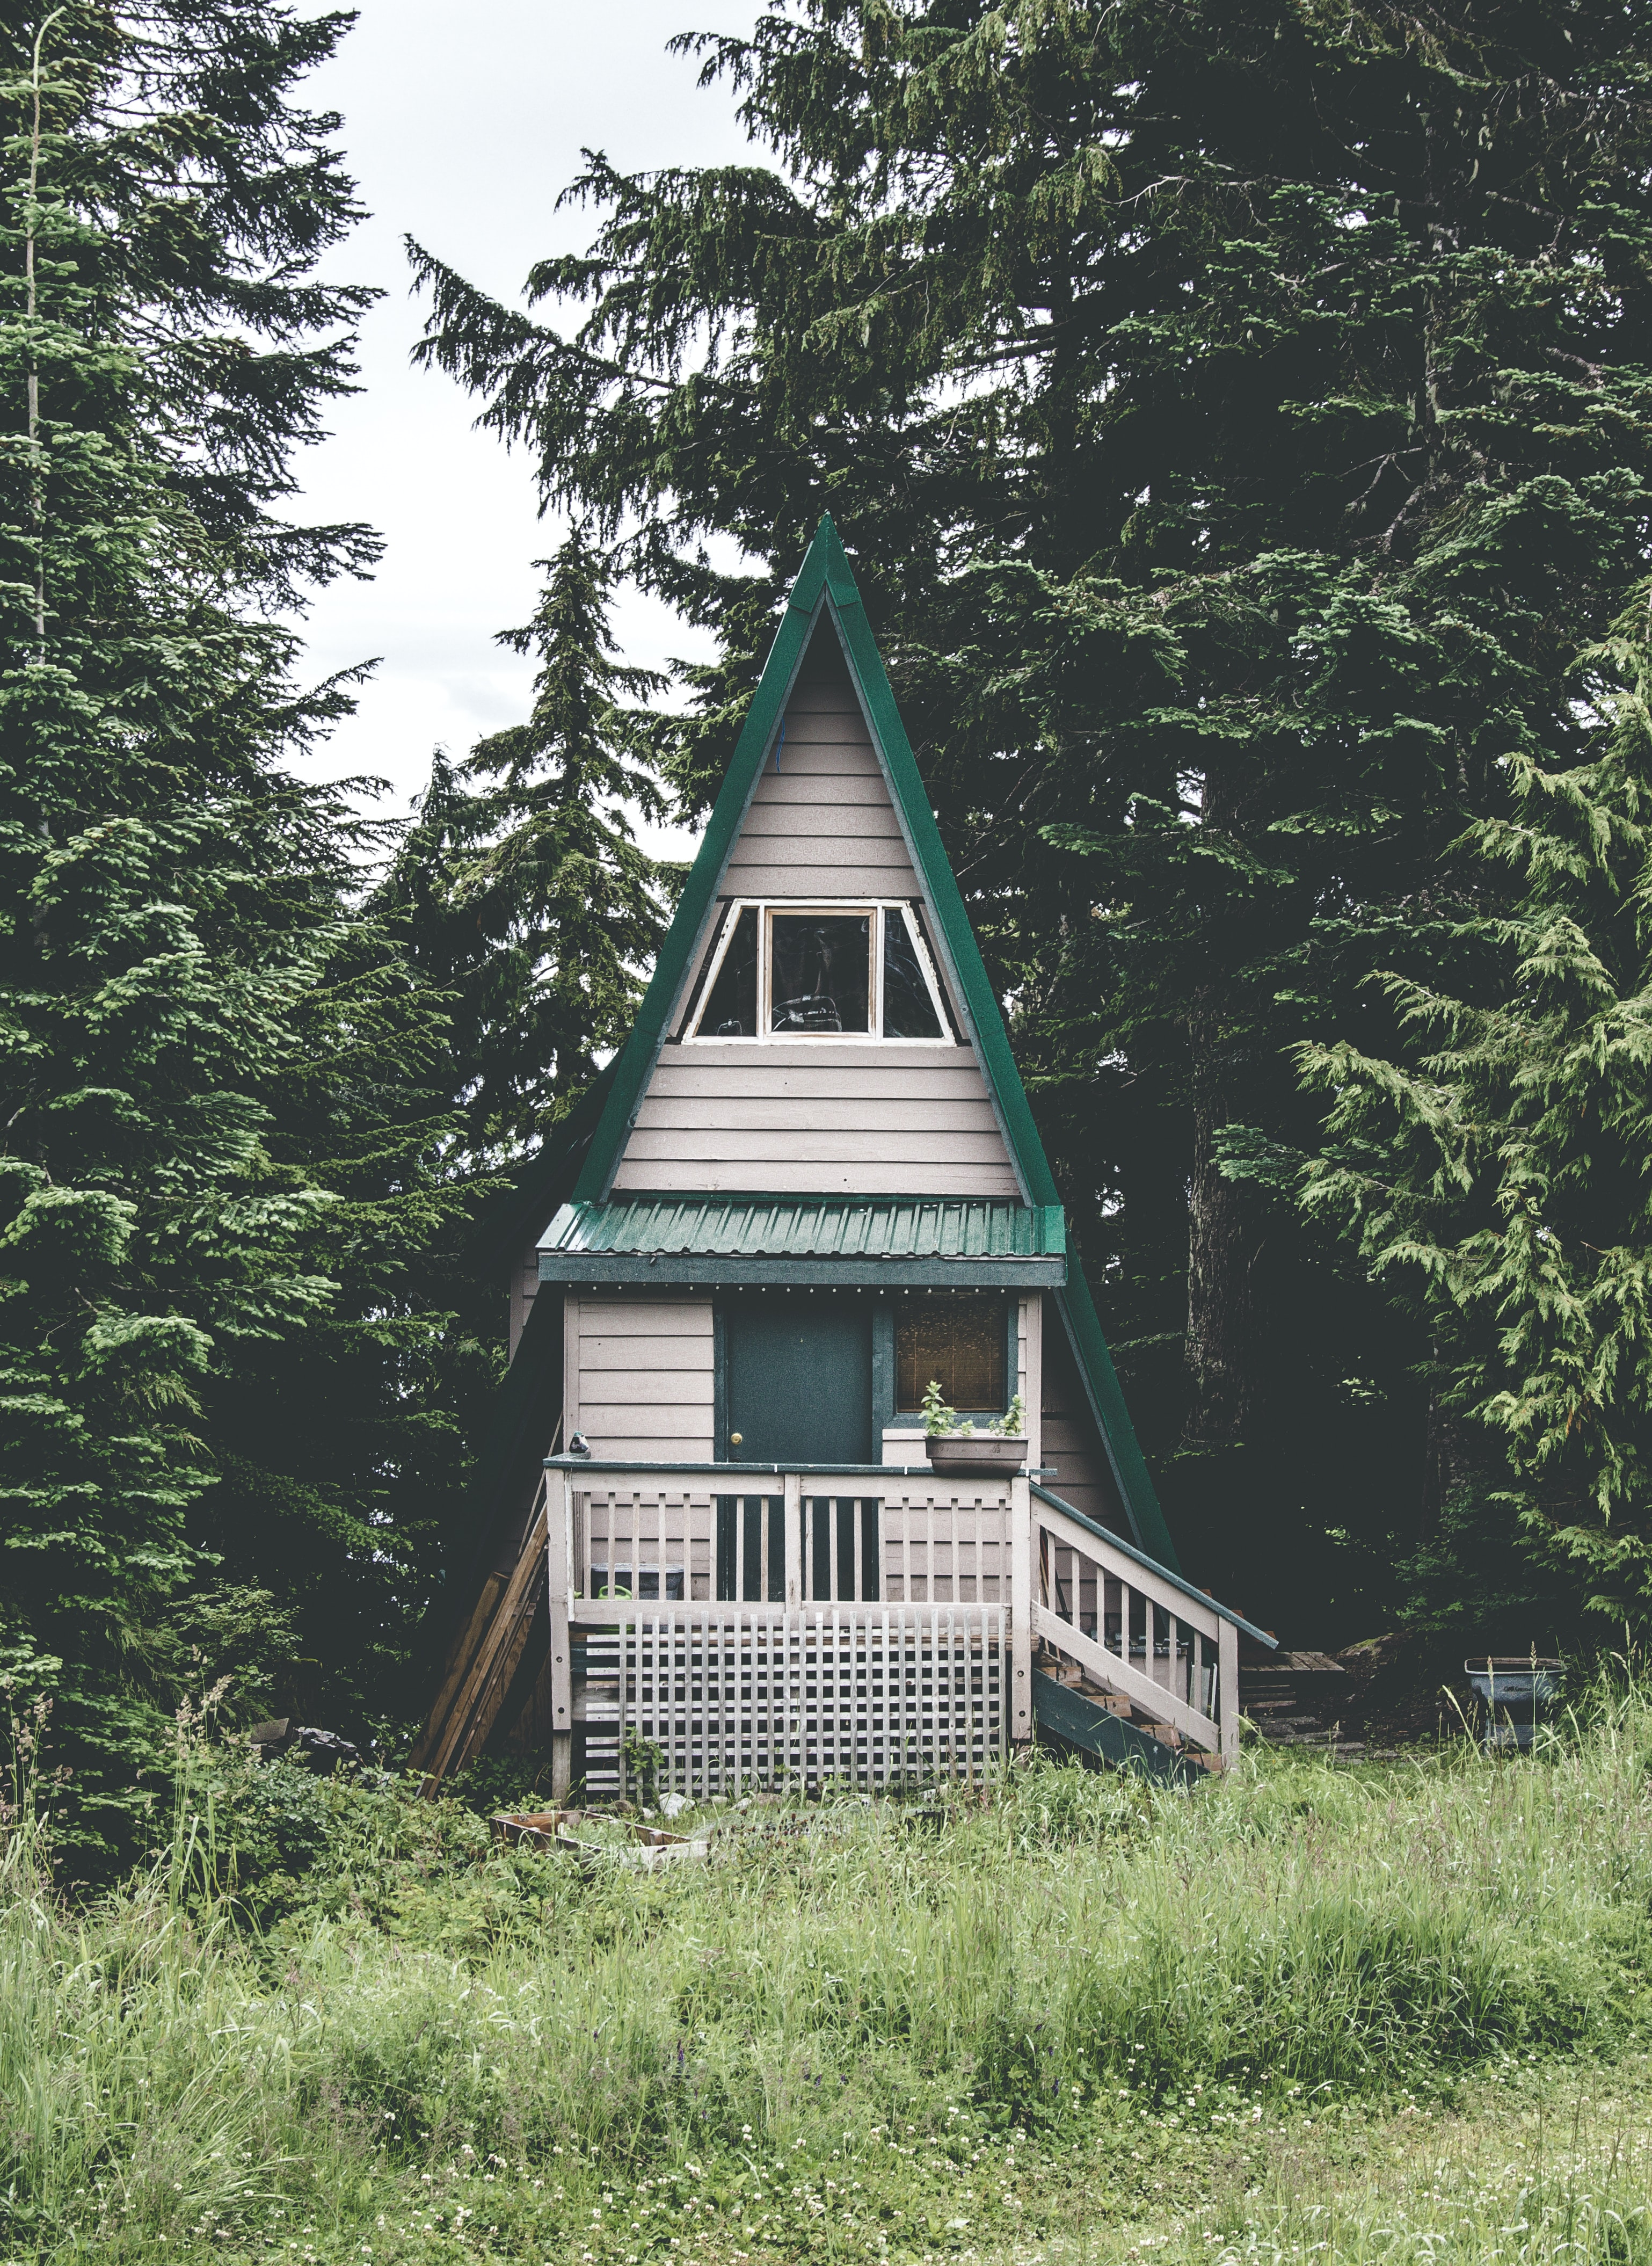 closeup photography of white and green bungalow house surrounded by trees